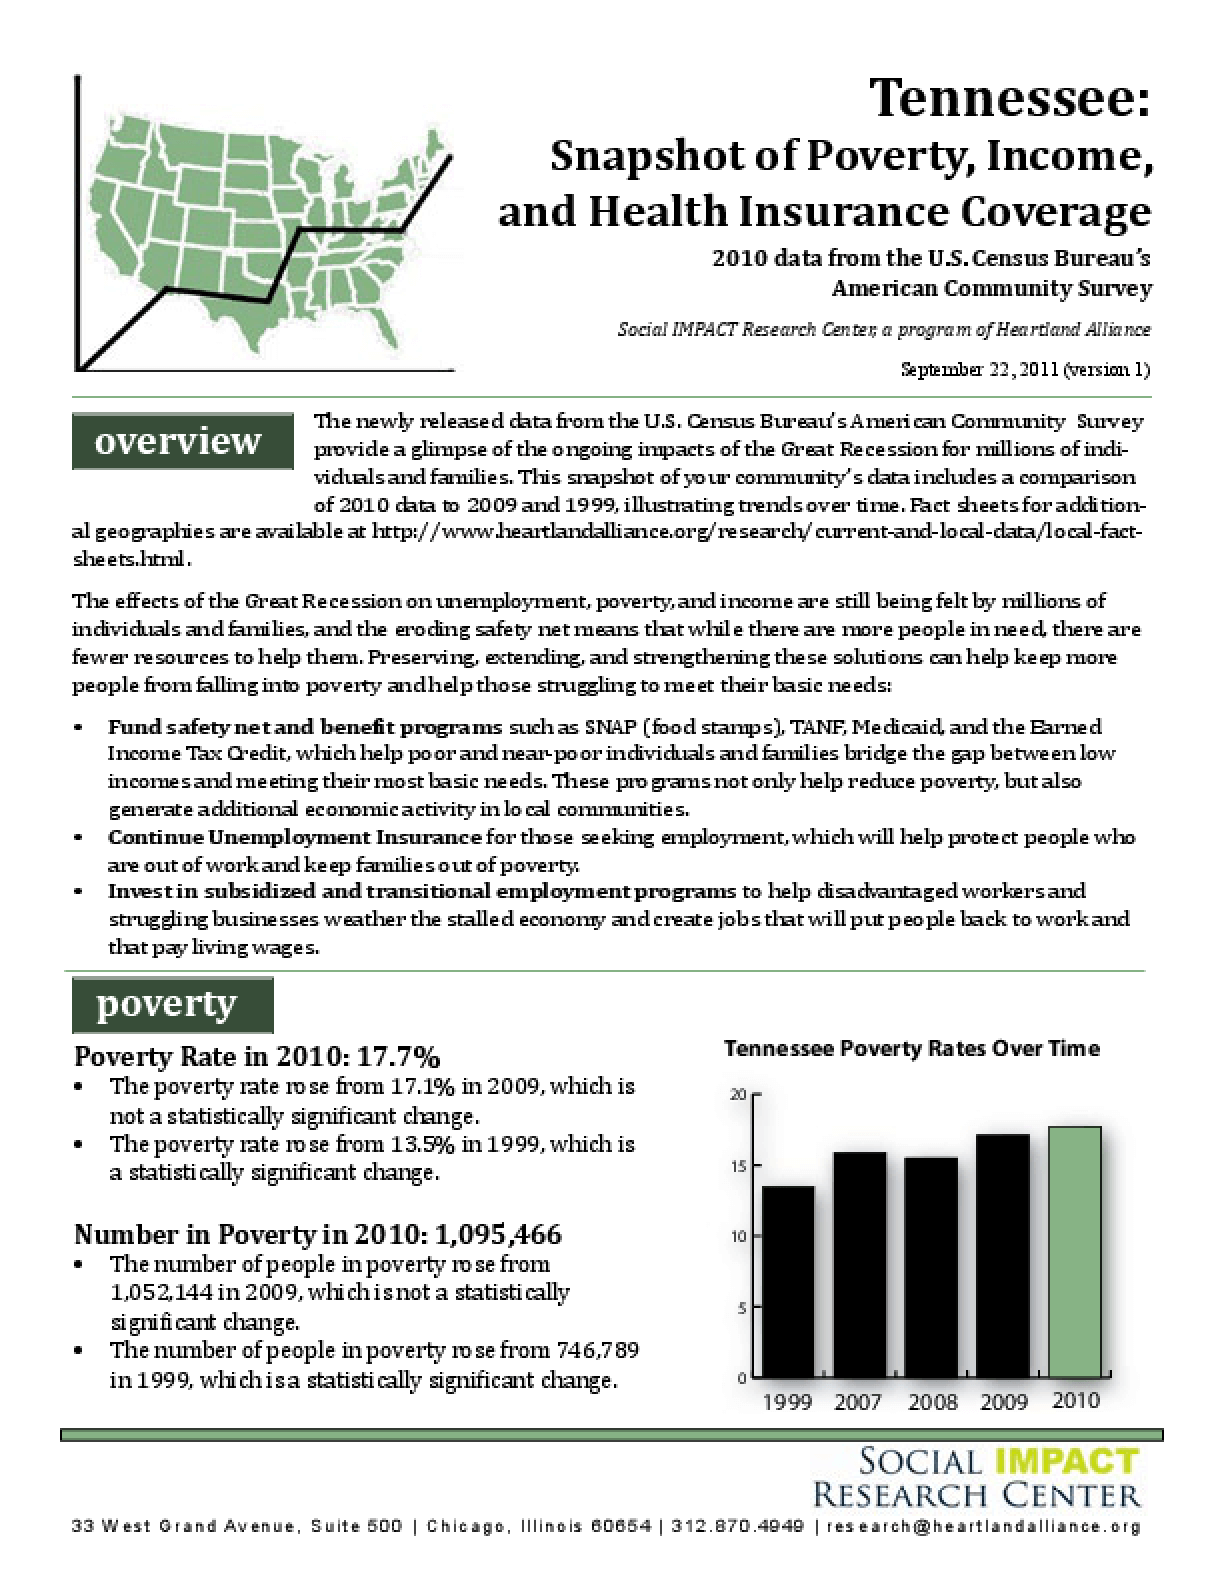 Tennessee: Snapshot of Poverty, Income, and Health Insurance Coverage